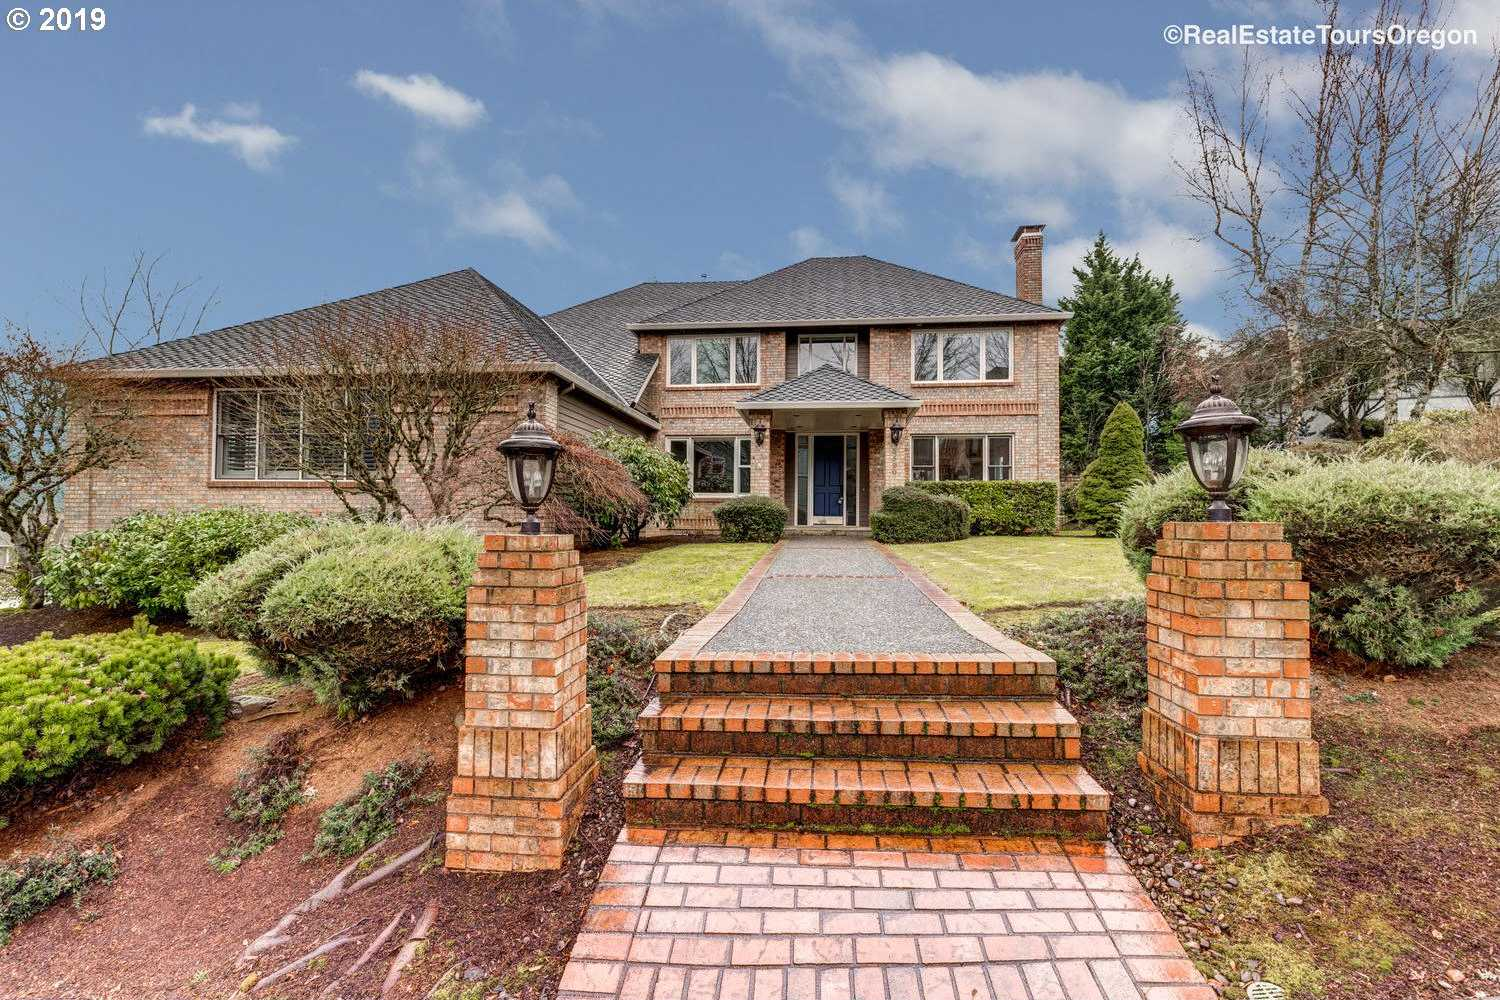 $874,900 - 6Br/4Ba -  for Sale in West Linn